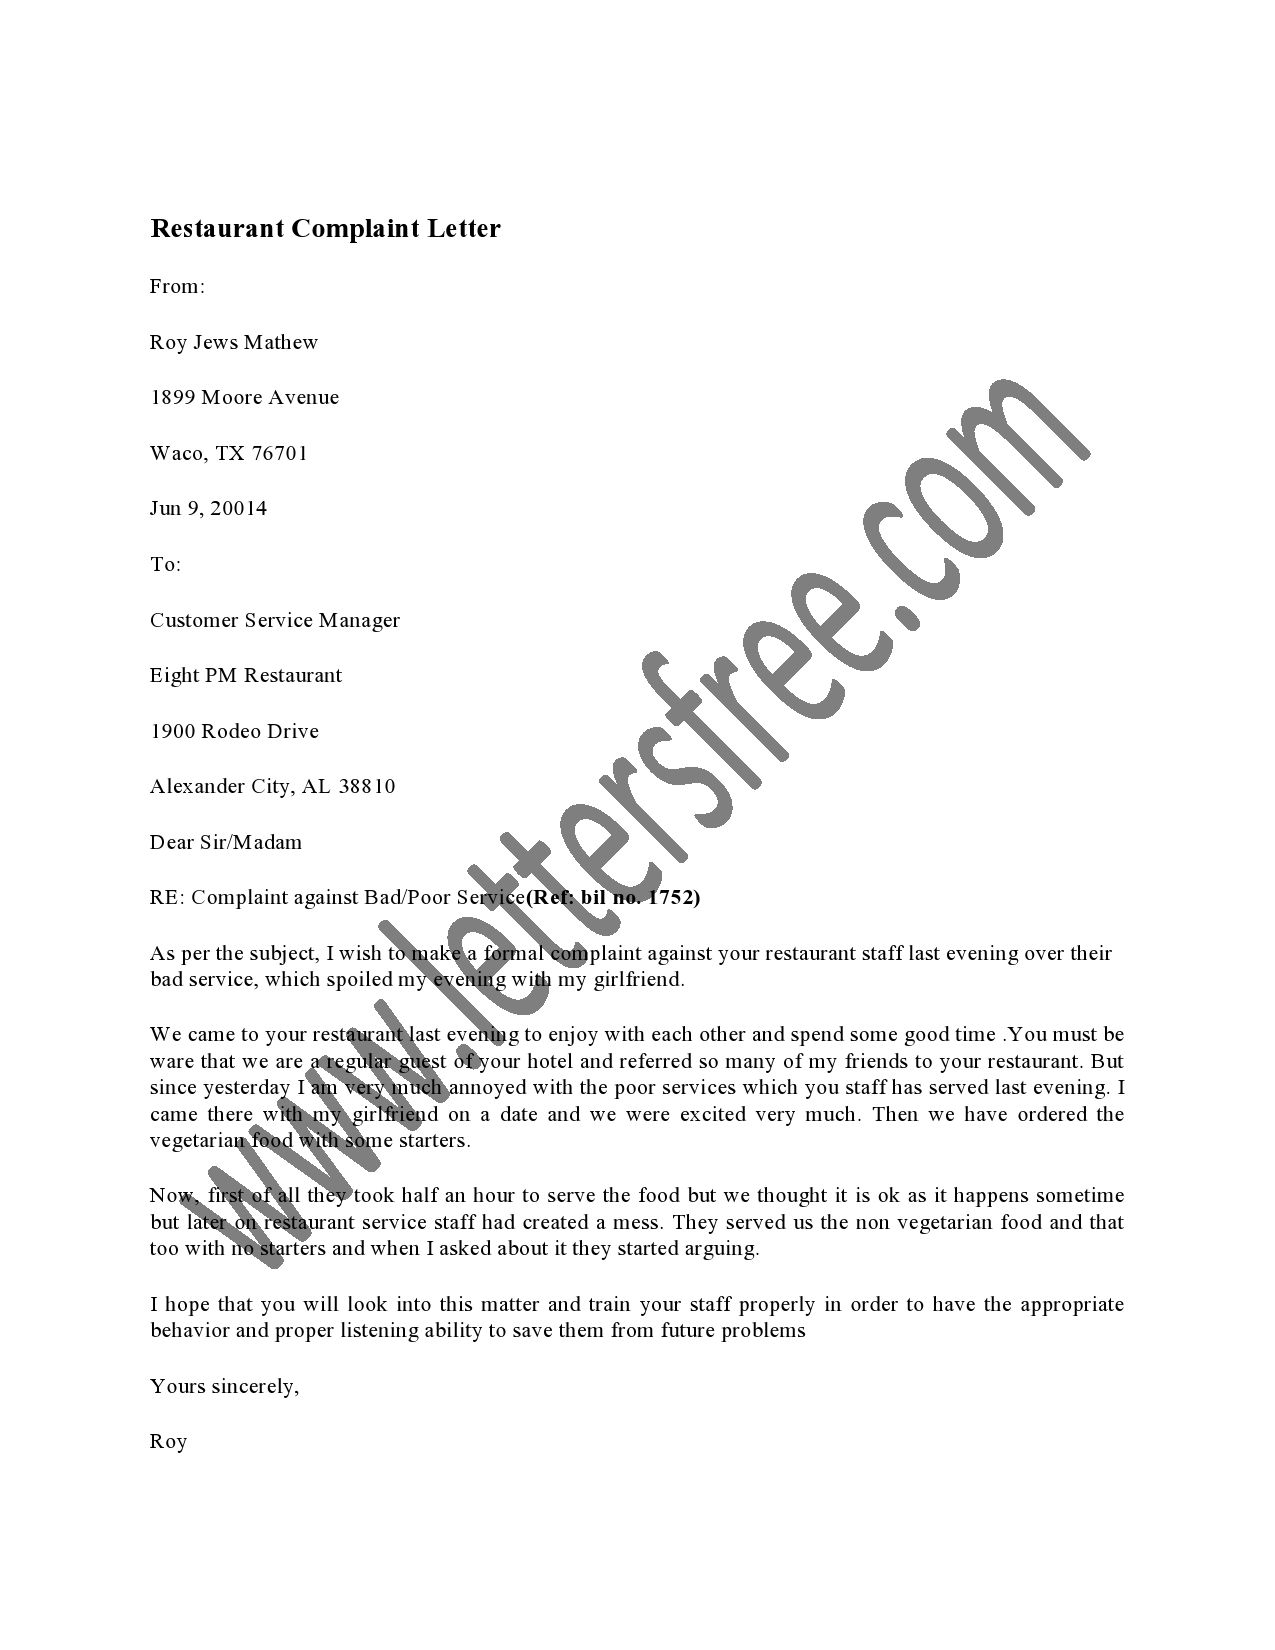 A Restaurant Complaint Letter Is Usually Sent By A Frustrated